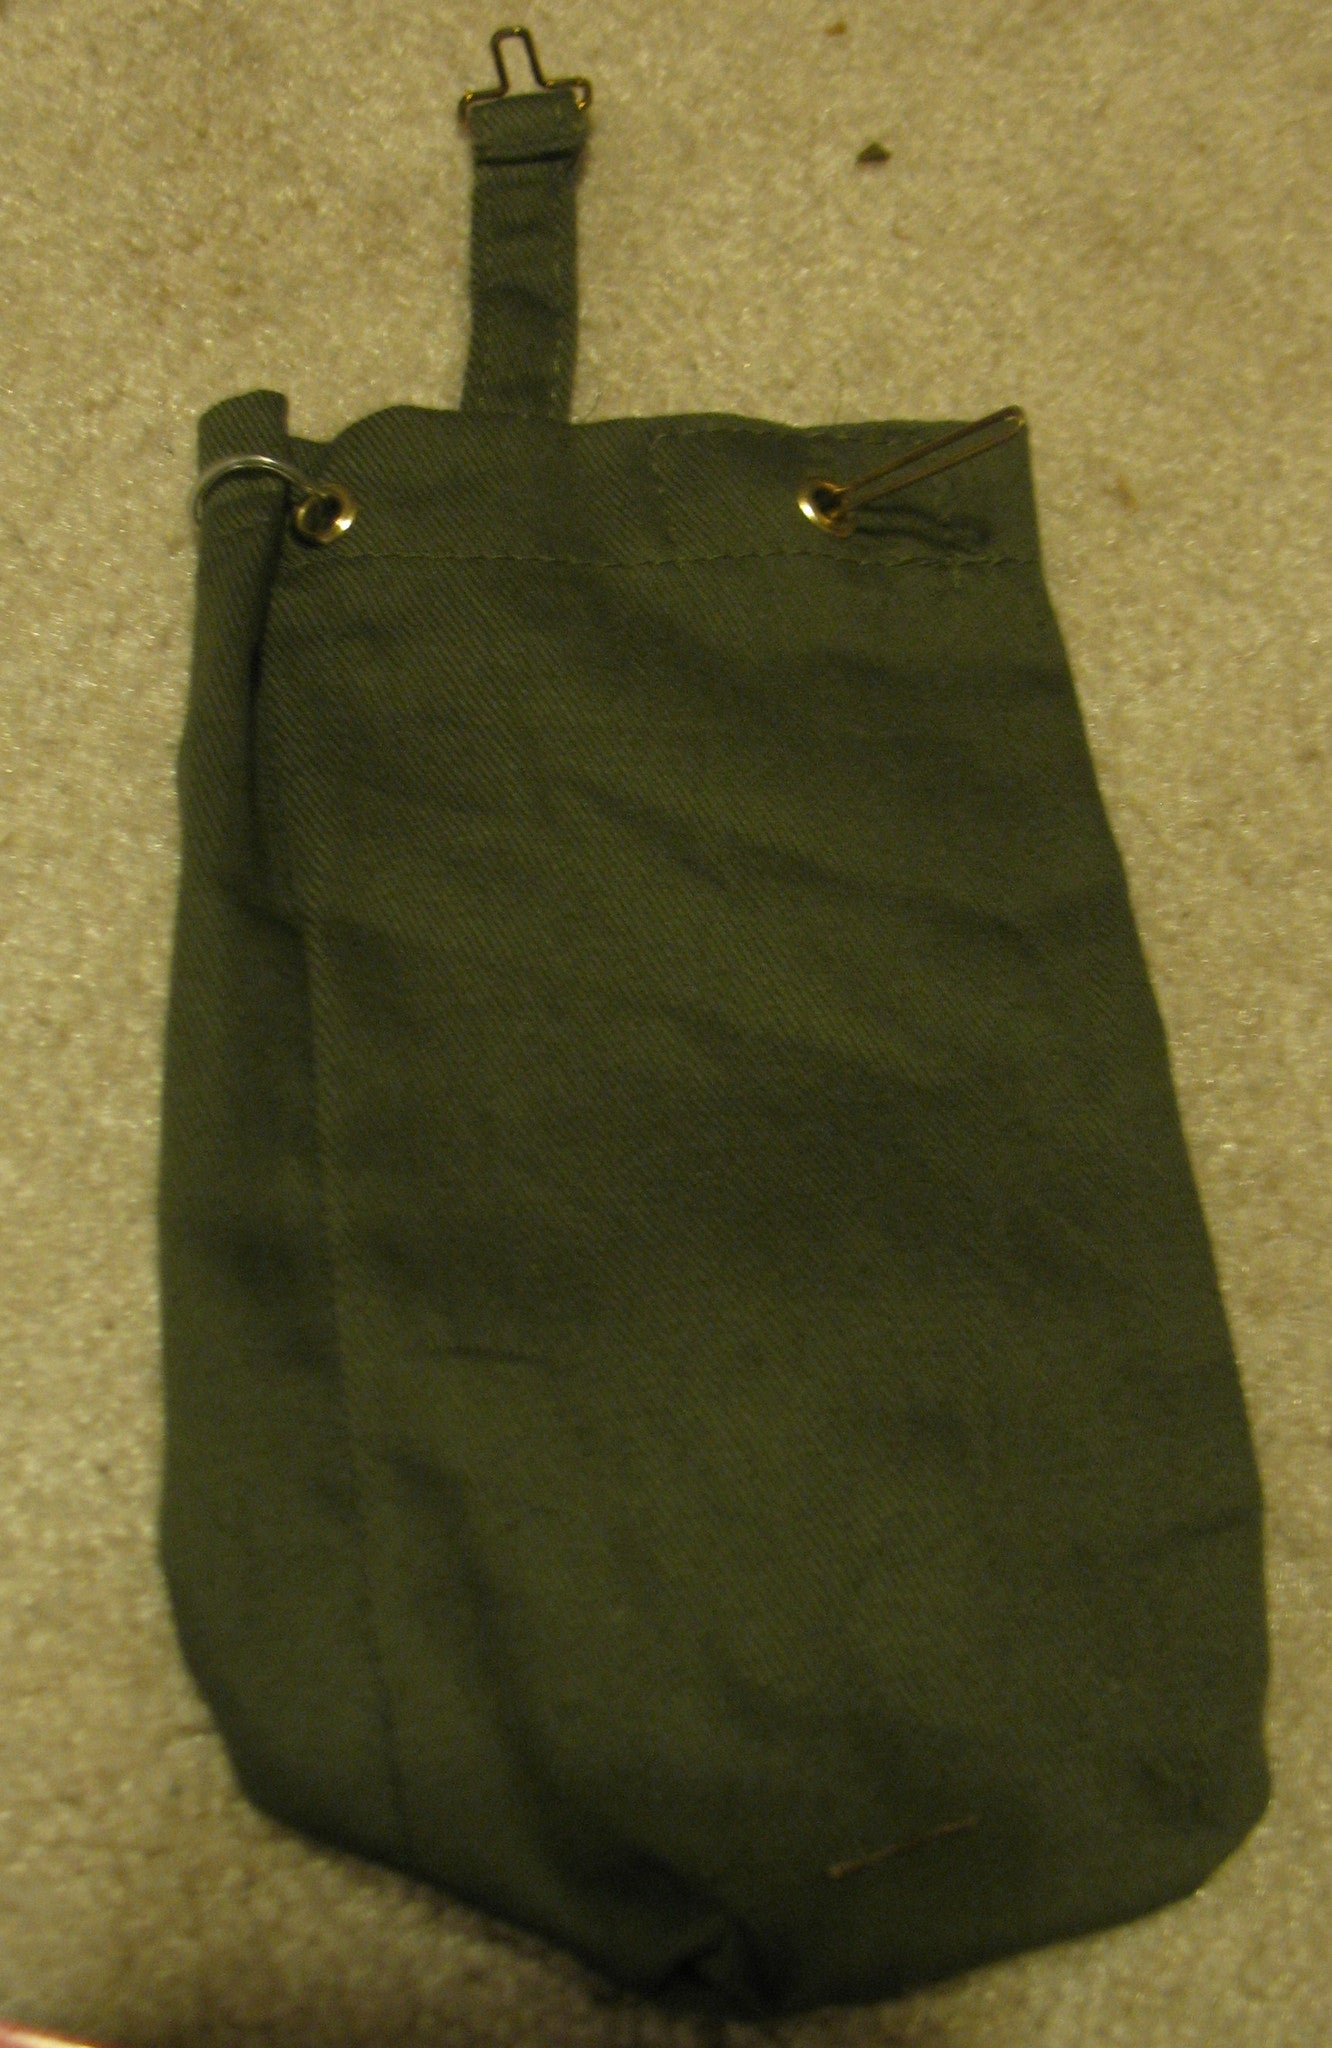 A042 Hasbro GI JOE reissued full sized duffle bag with brass hardware, brand new!